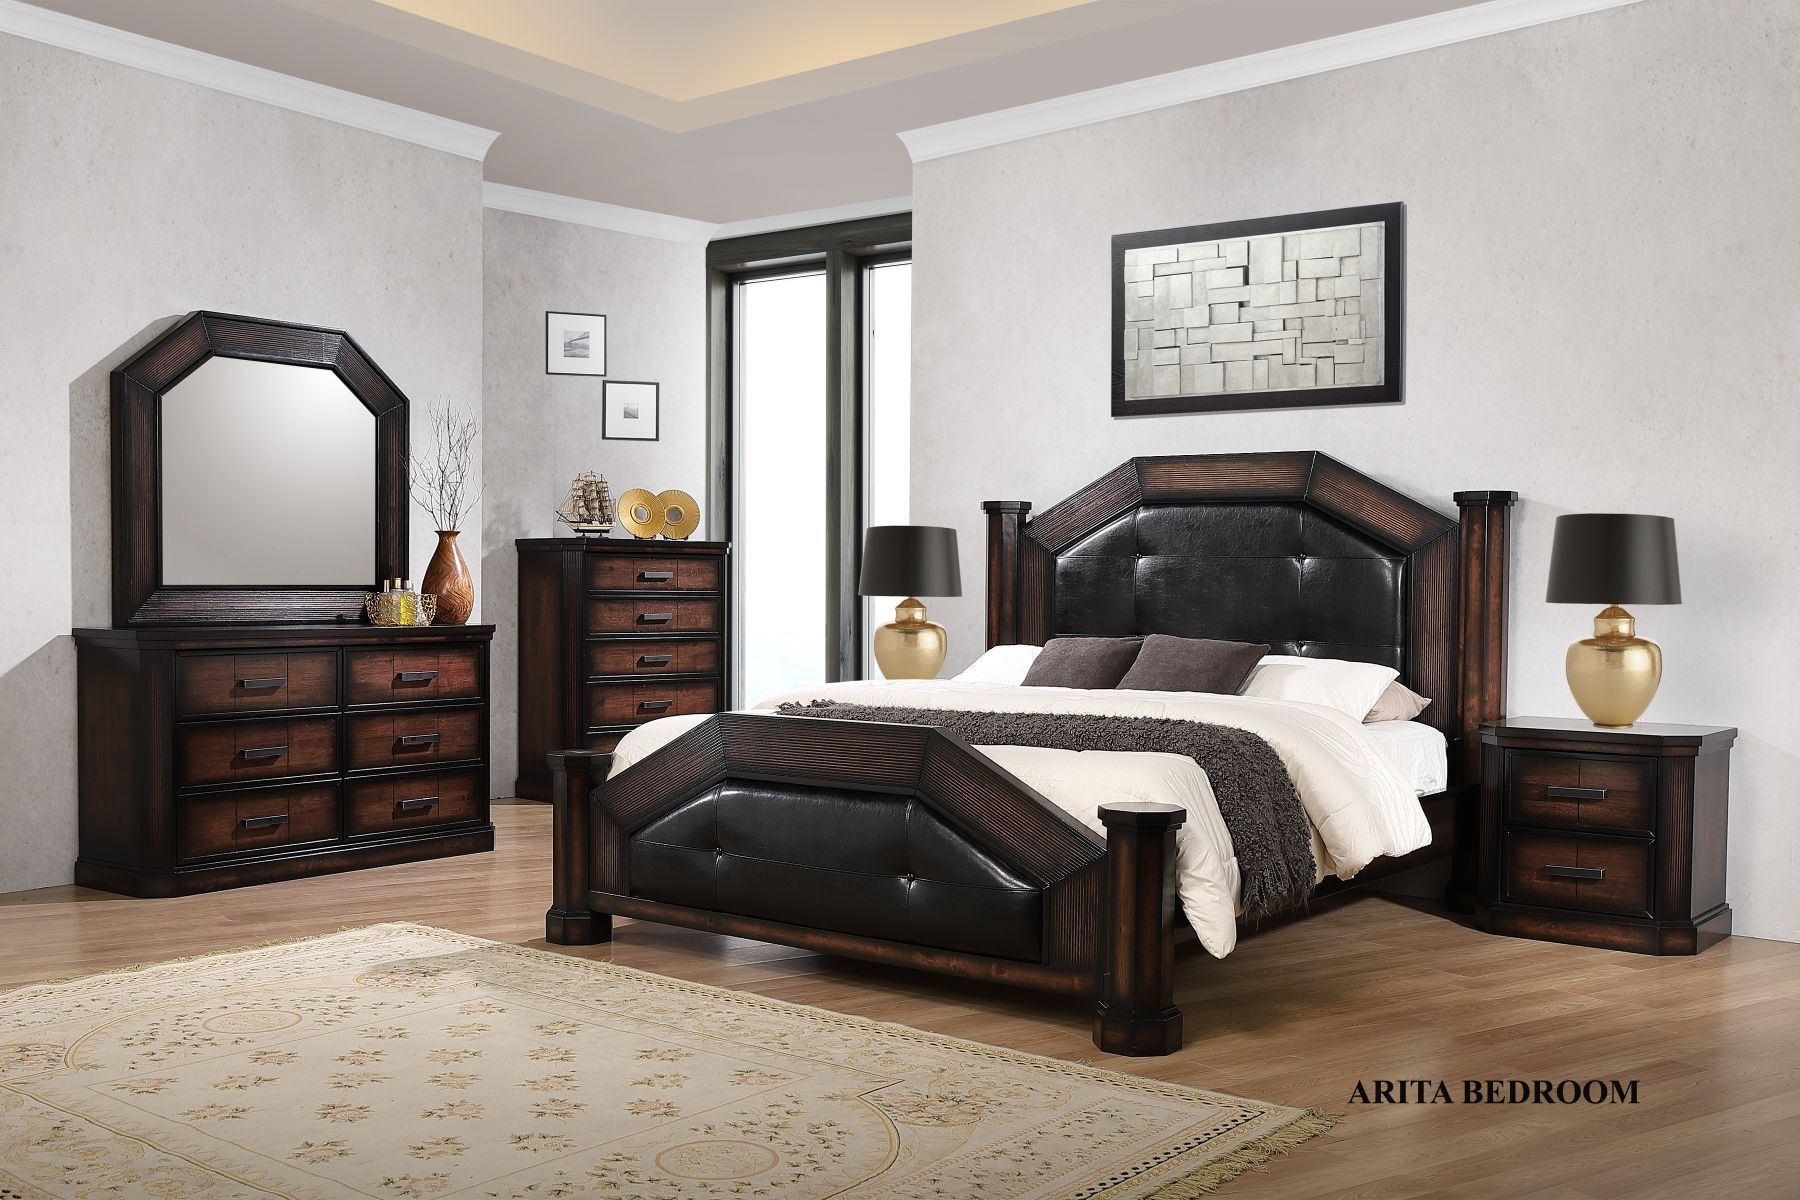 ARITA BEDROOM